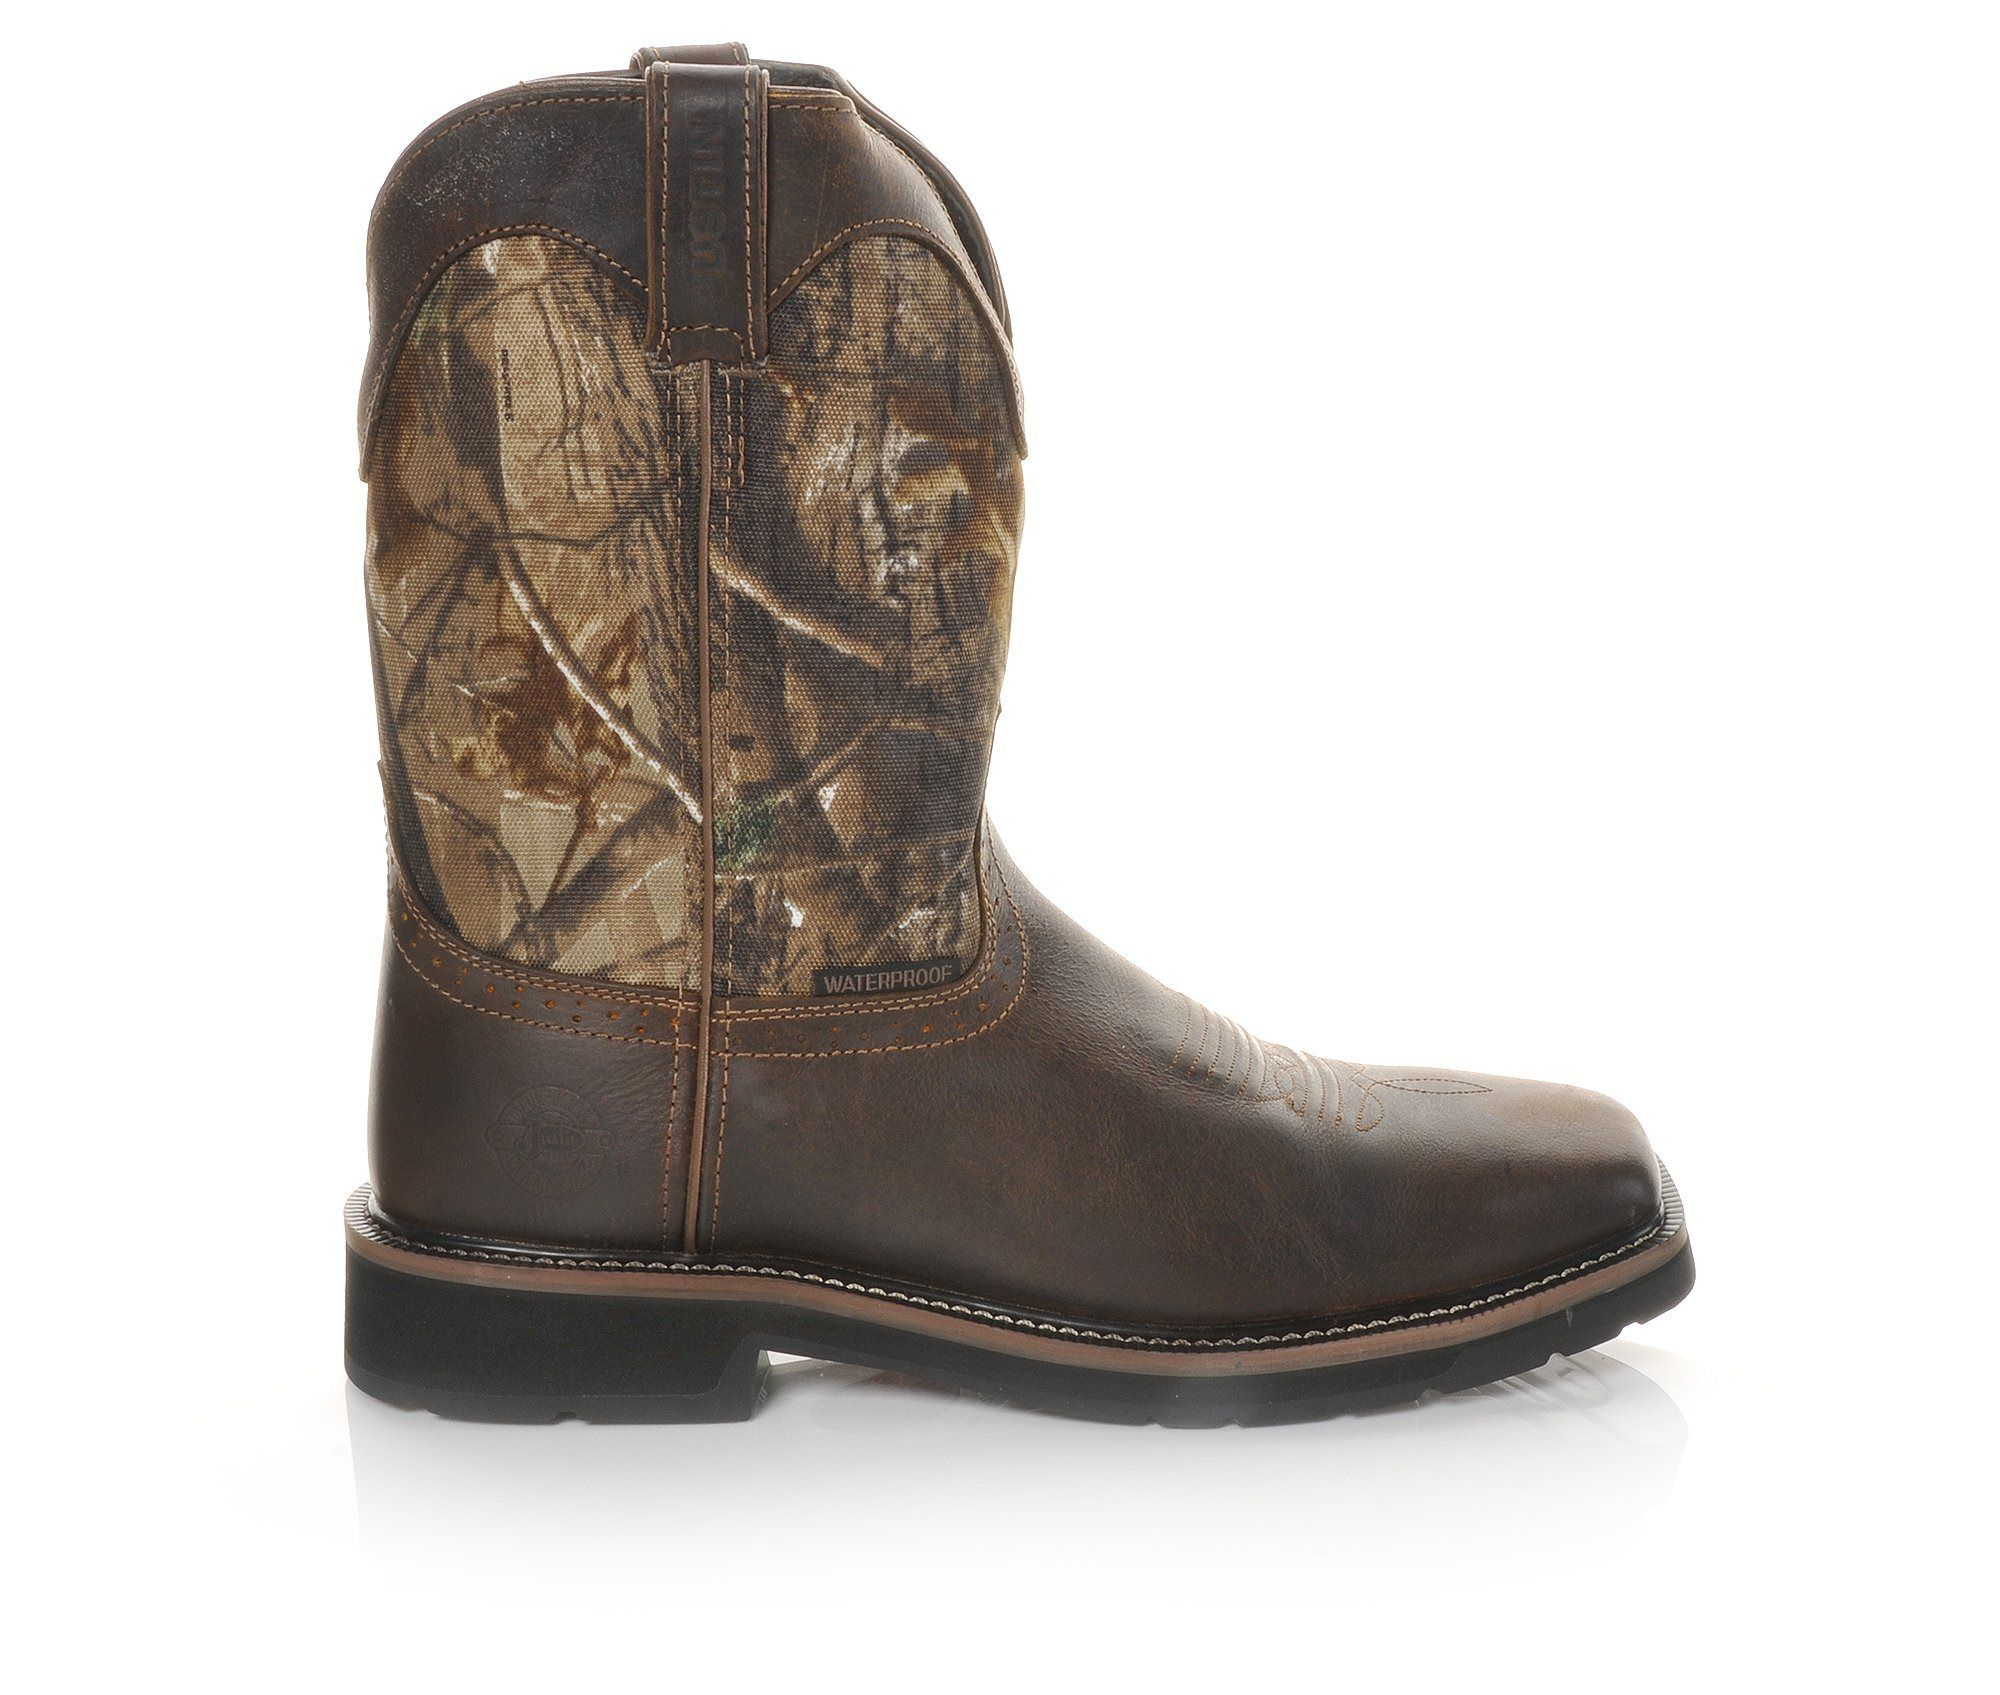 Men's Justin Boots WK4676 Stampede Work Boots Real Tree Camo